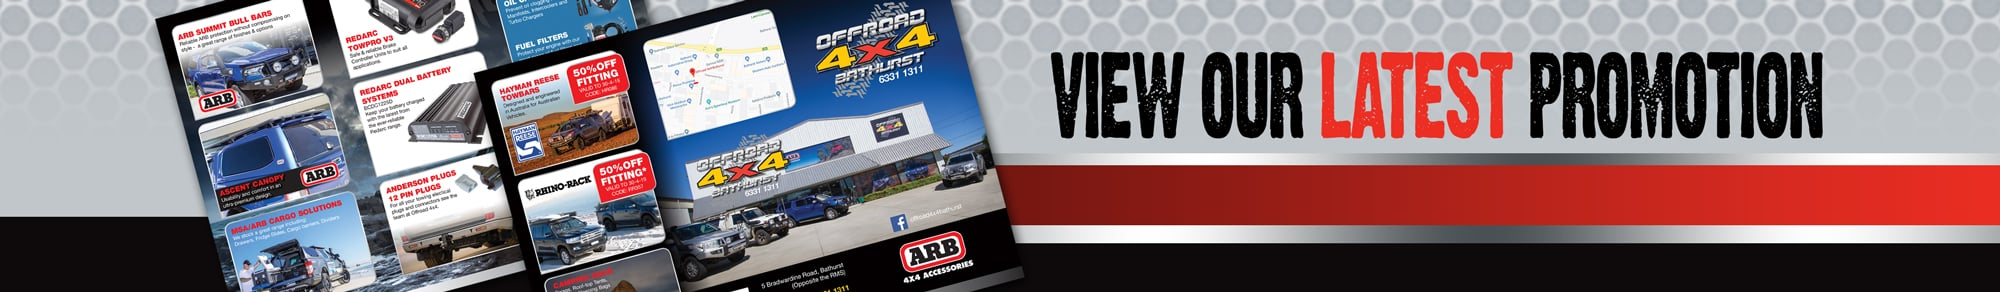 offroad 4x4 latest newsletter promotion banner